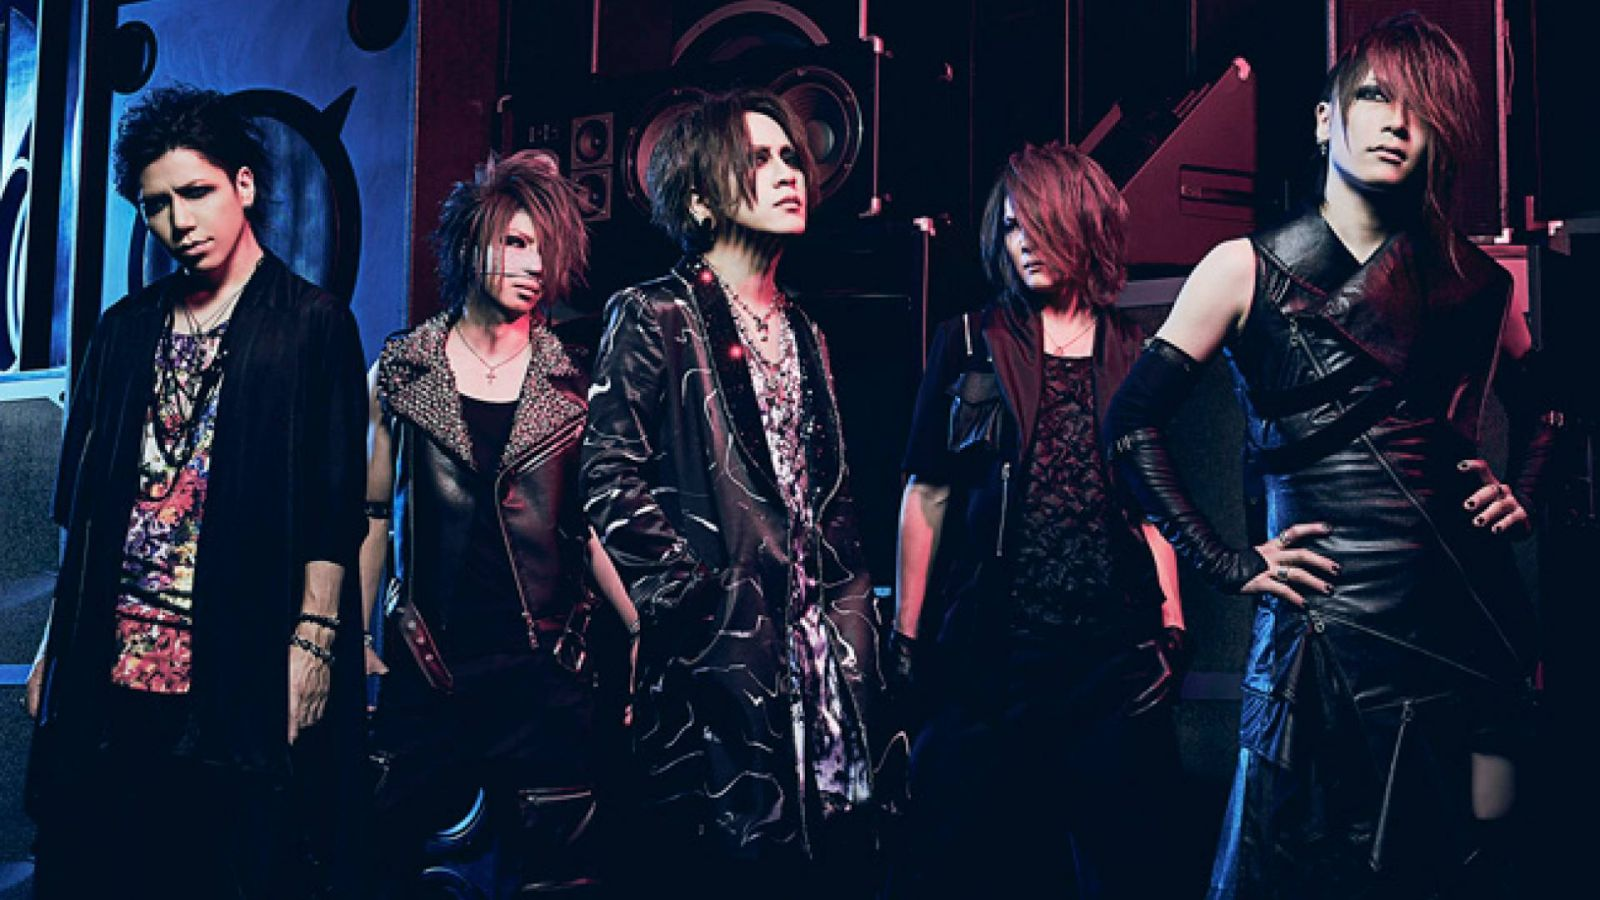 Детали альбома the GazettE © Sony Music Entertainment (Japan) Inc. All rights reserved.